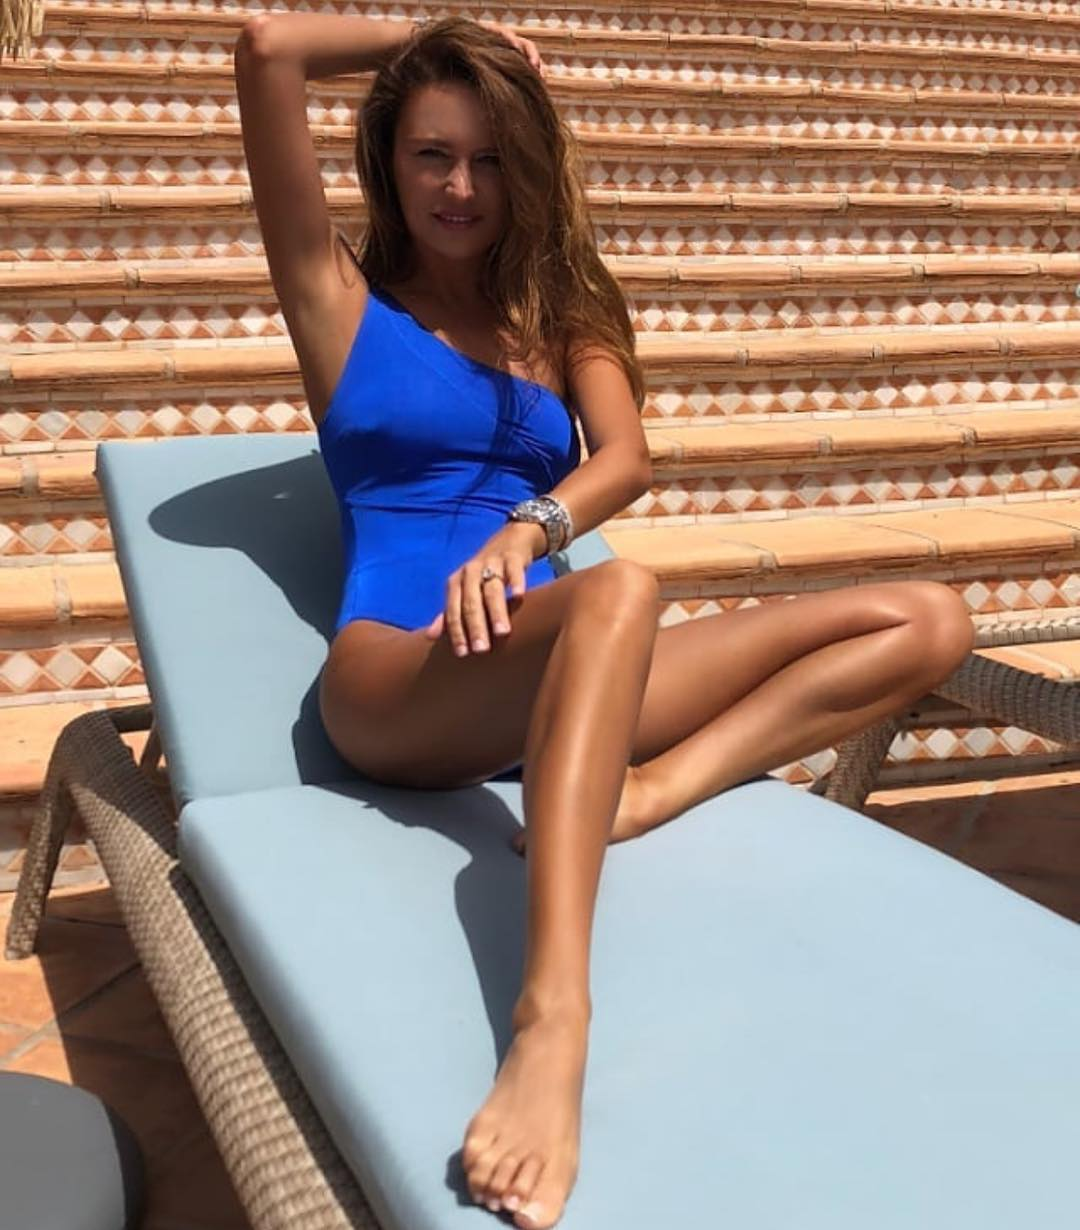 One Shoulder Swimsuit In Bright Blue Color For Summer Vacation 2020